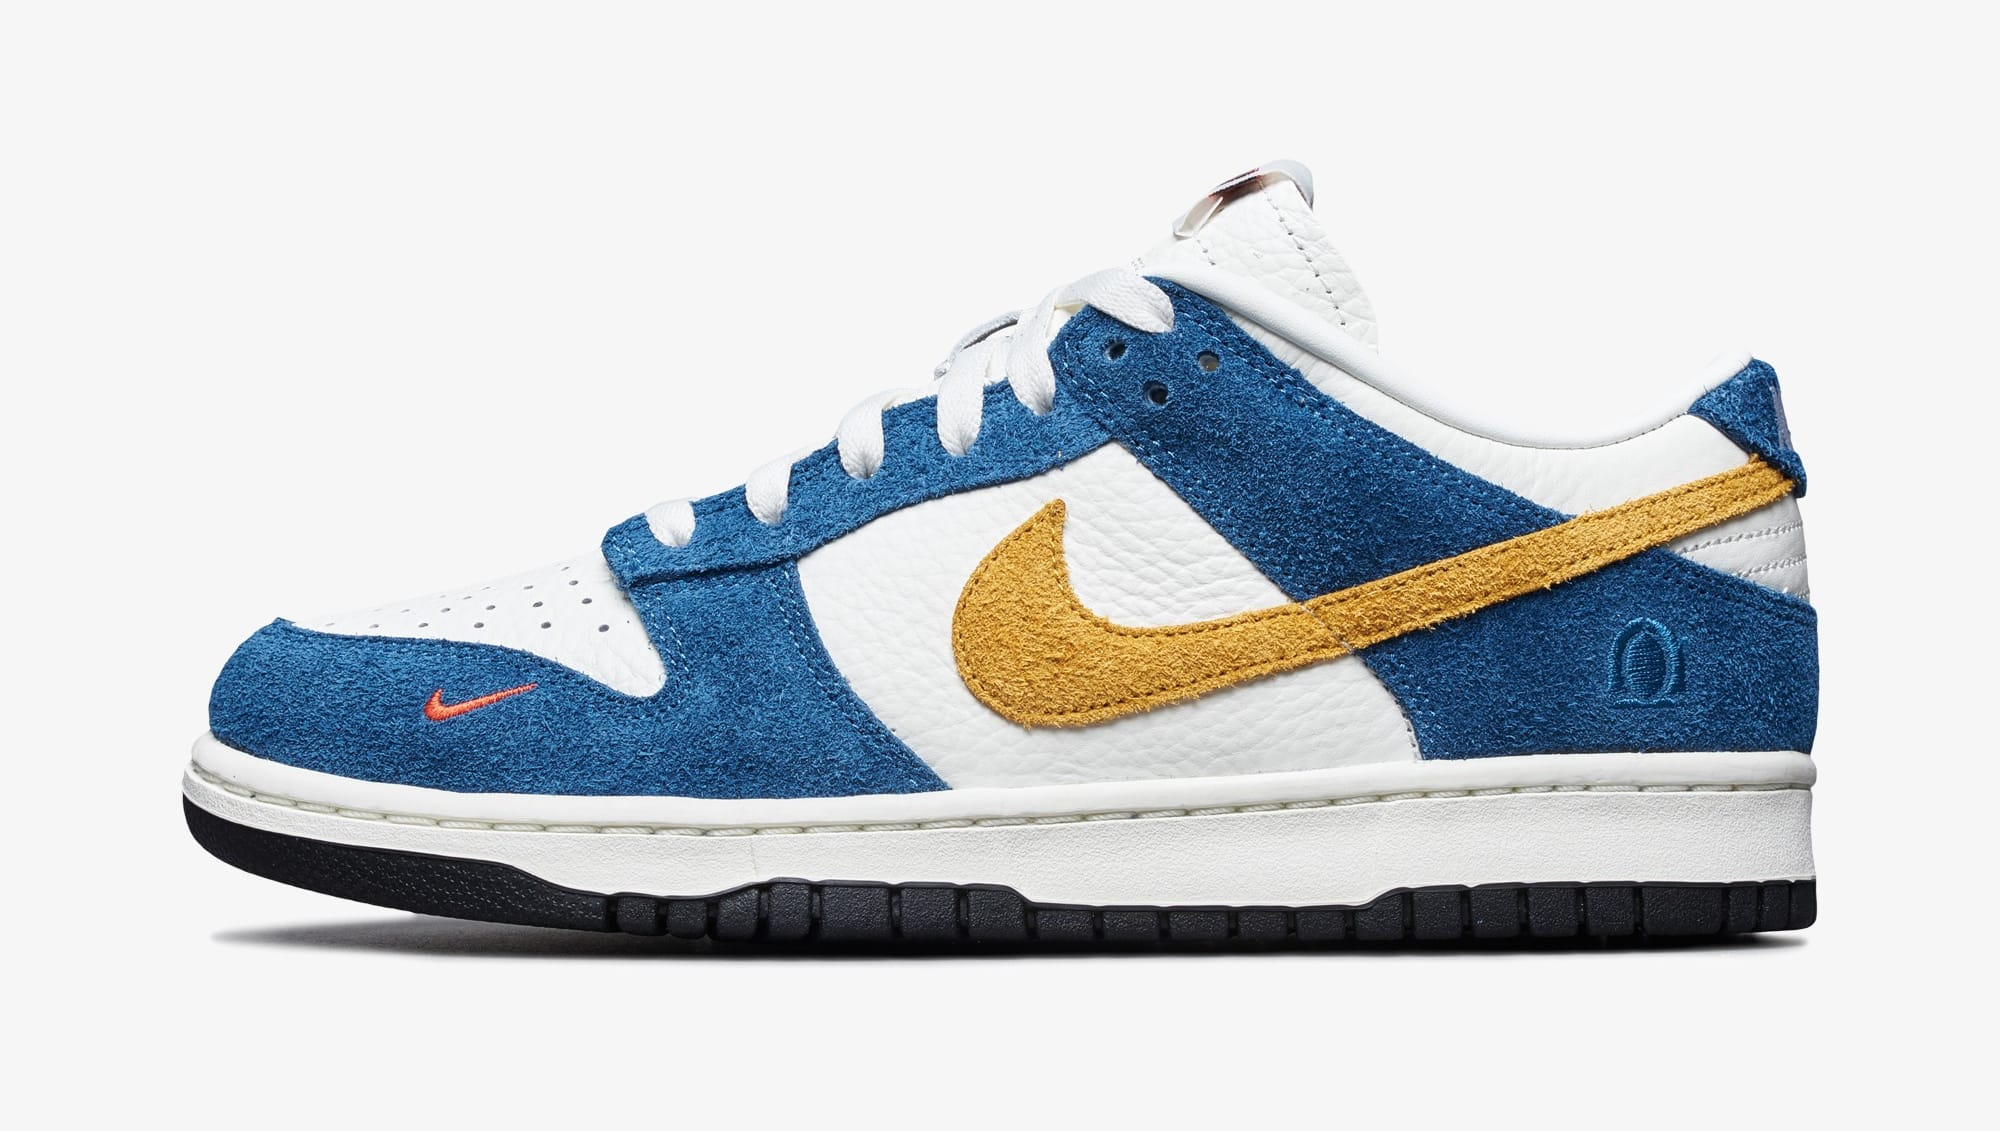 Kasina x Nike Dunk Low 'Industrial Blue' CZ6501-100 Lateral